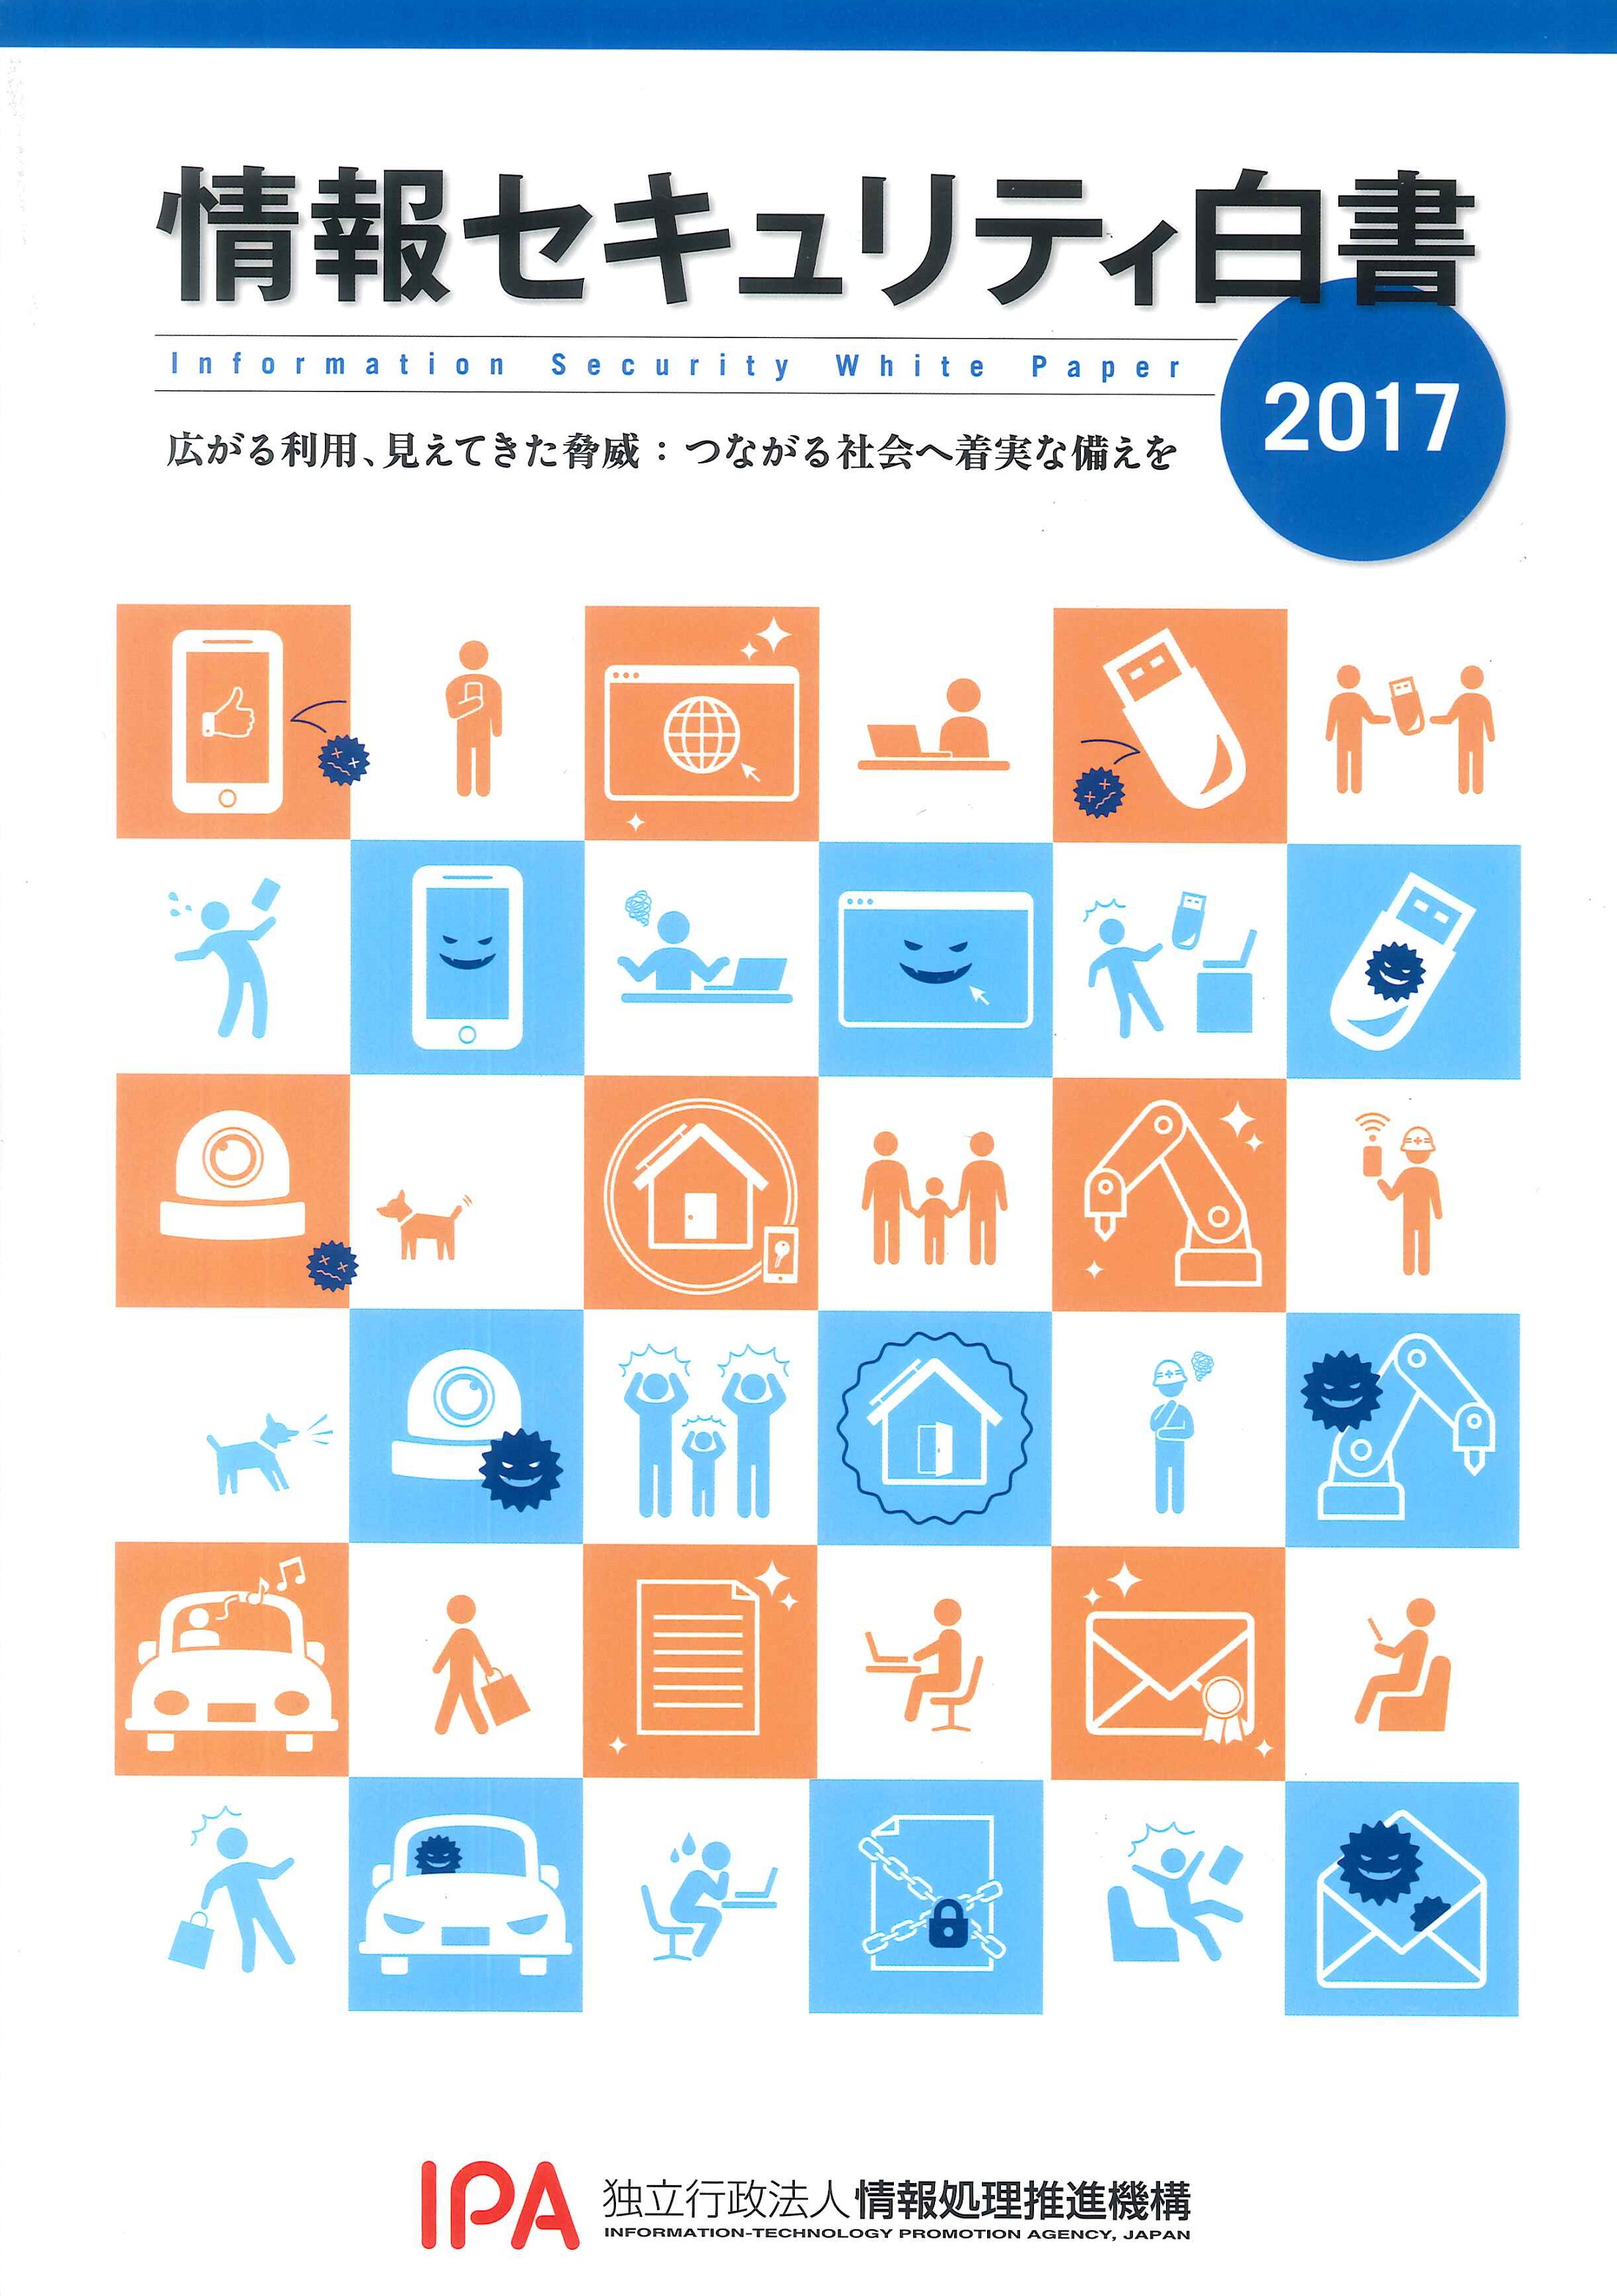 情報セキュリティ白書=Information security white paper